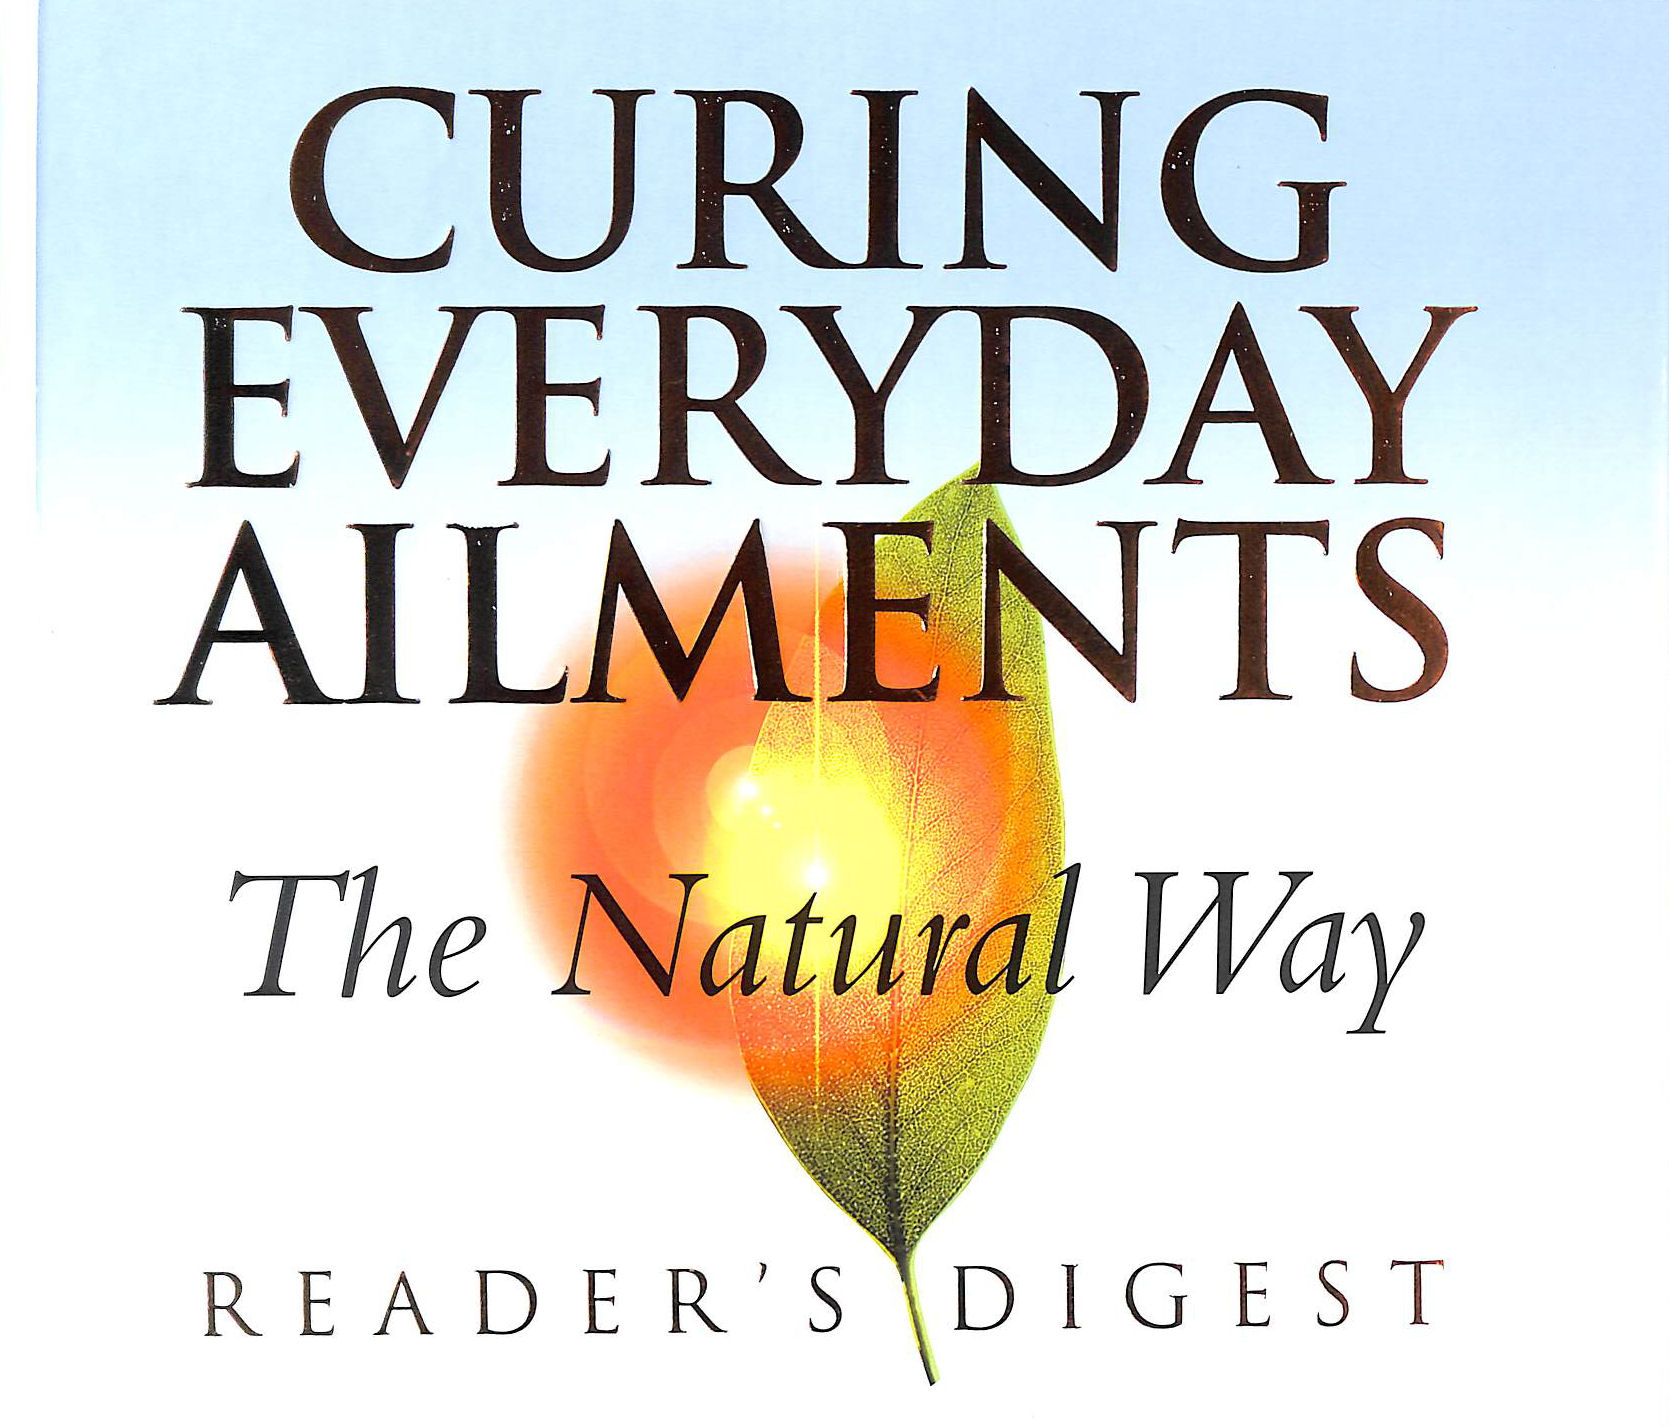 Image for Curing Everyday Ailments the Natural Way